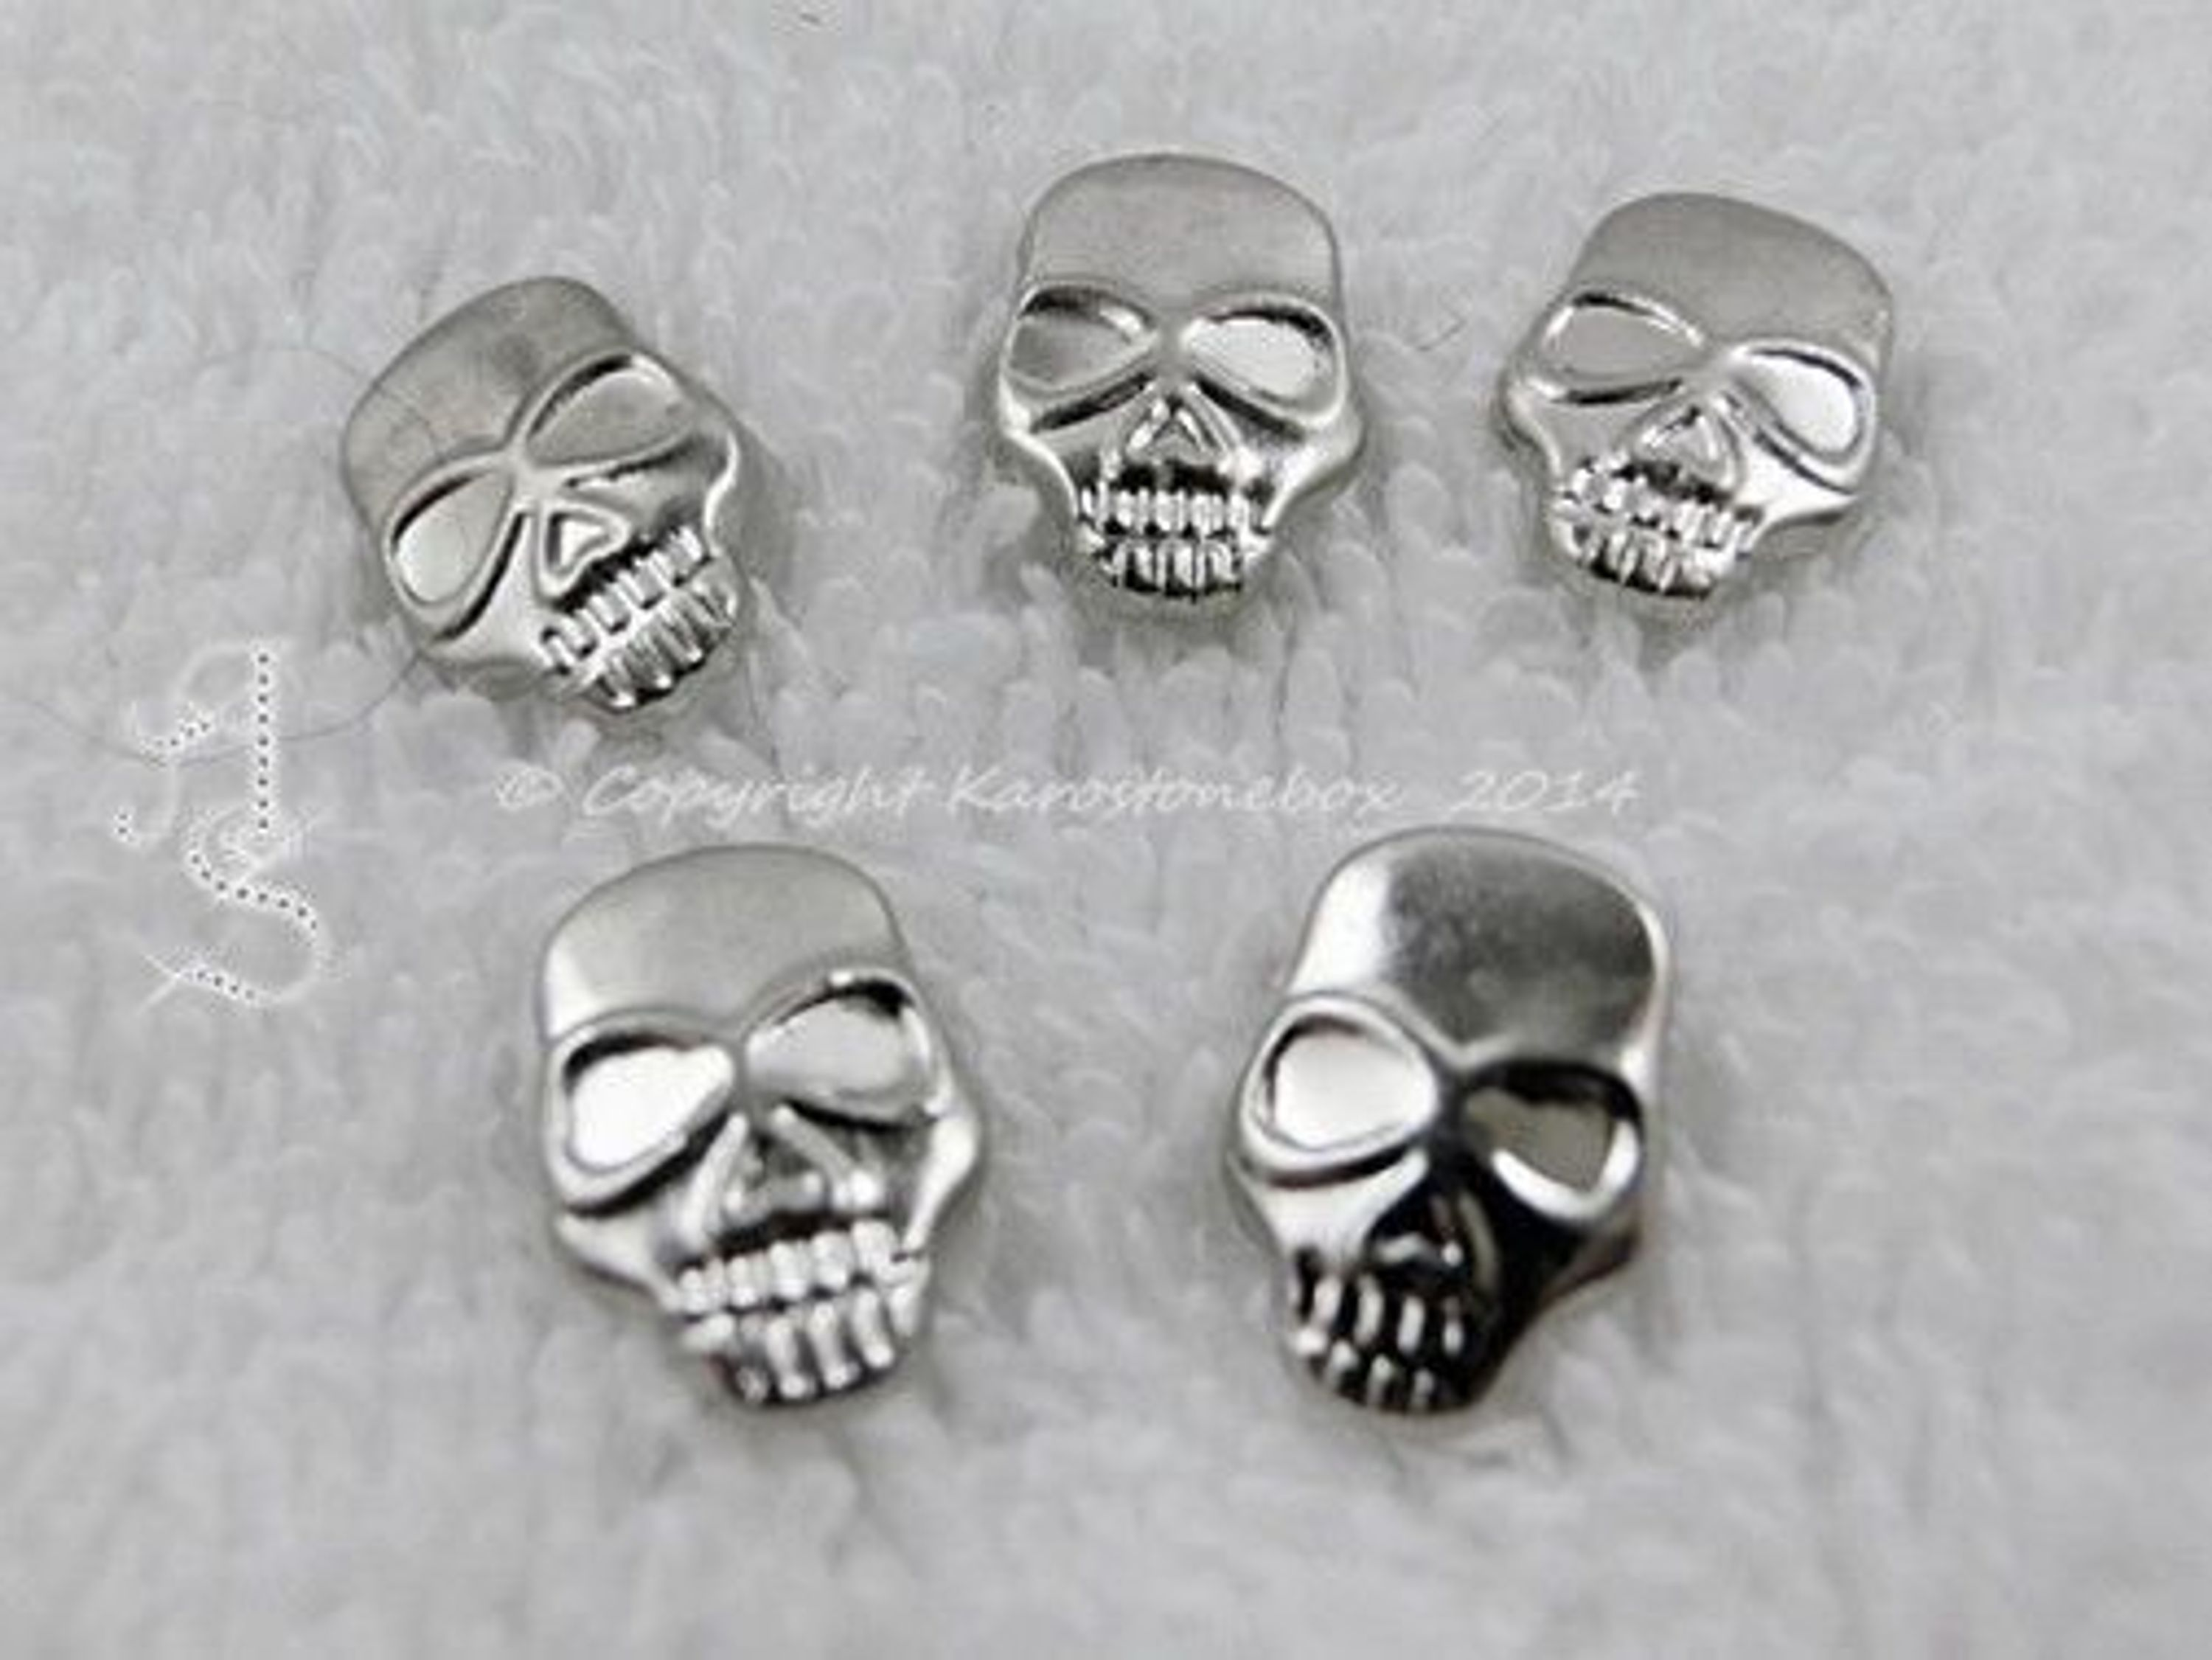 10 hotfix totenkopf b gelnieten nieten zum aufb geln silber karostonebox kaufen bei. Black Bedroom Furniture Sets. Home Design Ideas